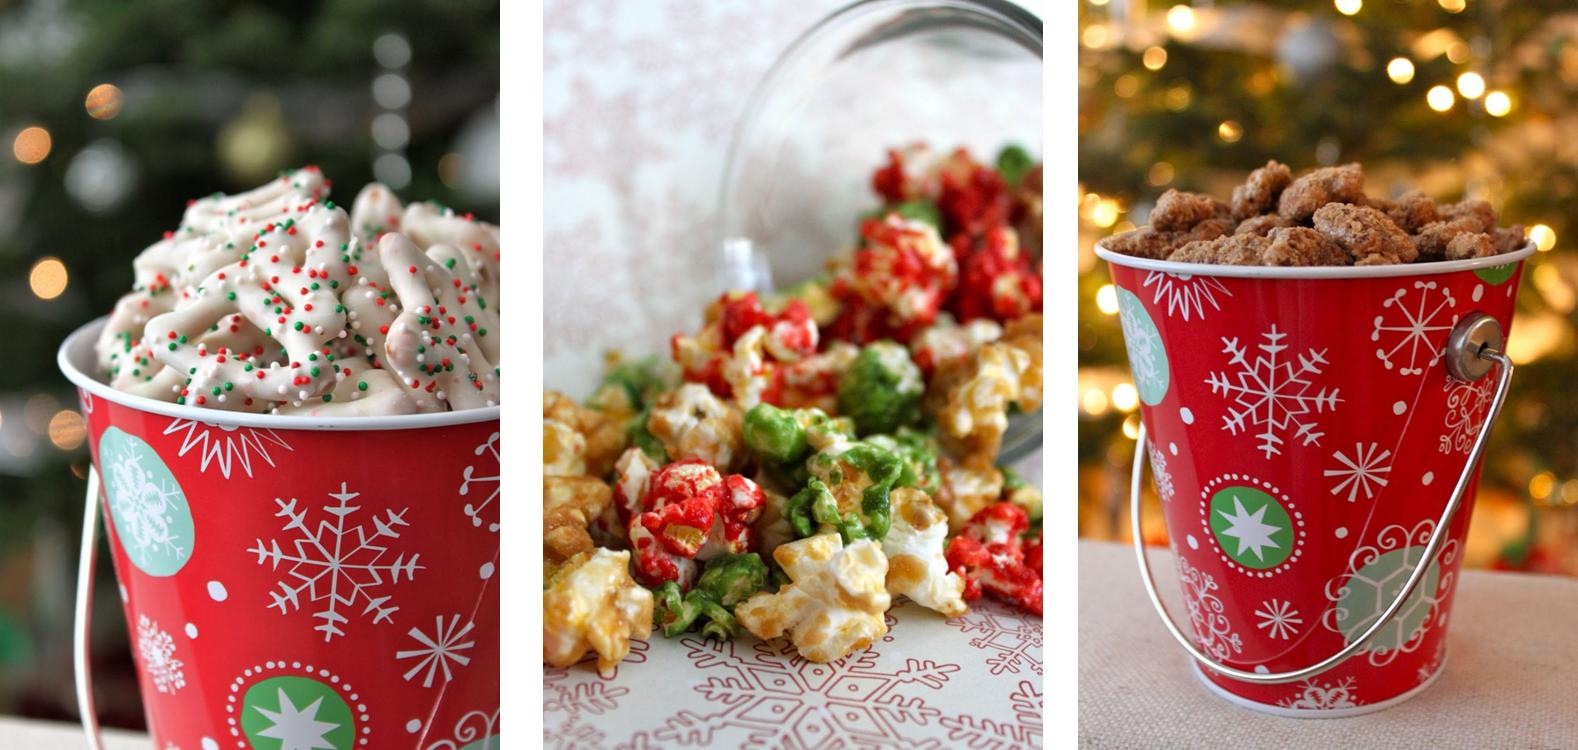 THE MOTHER OF ALL PINS! 186 homemade & out-of-the-box Christmas gift ideas.